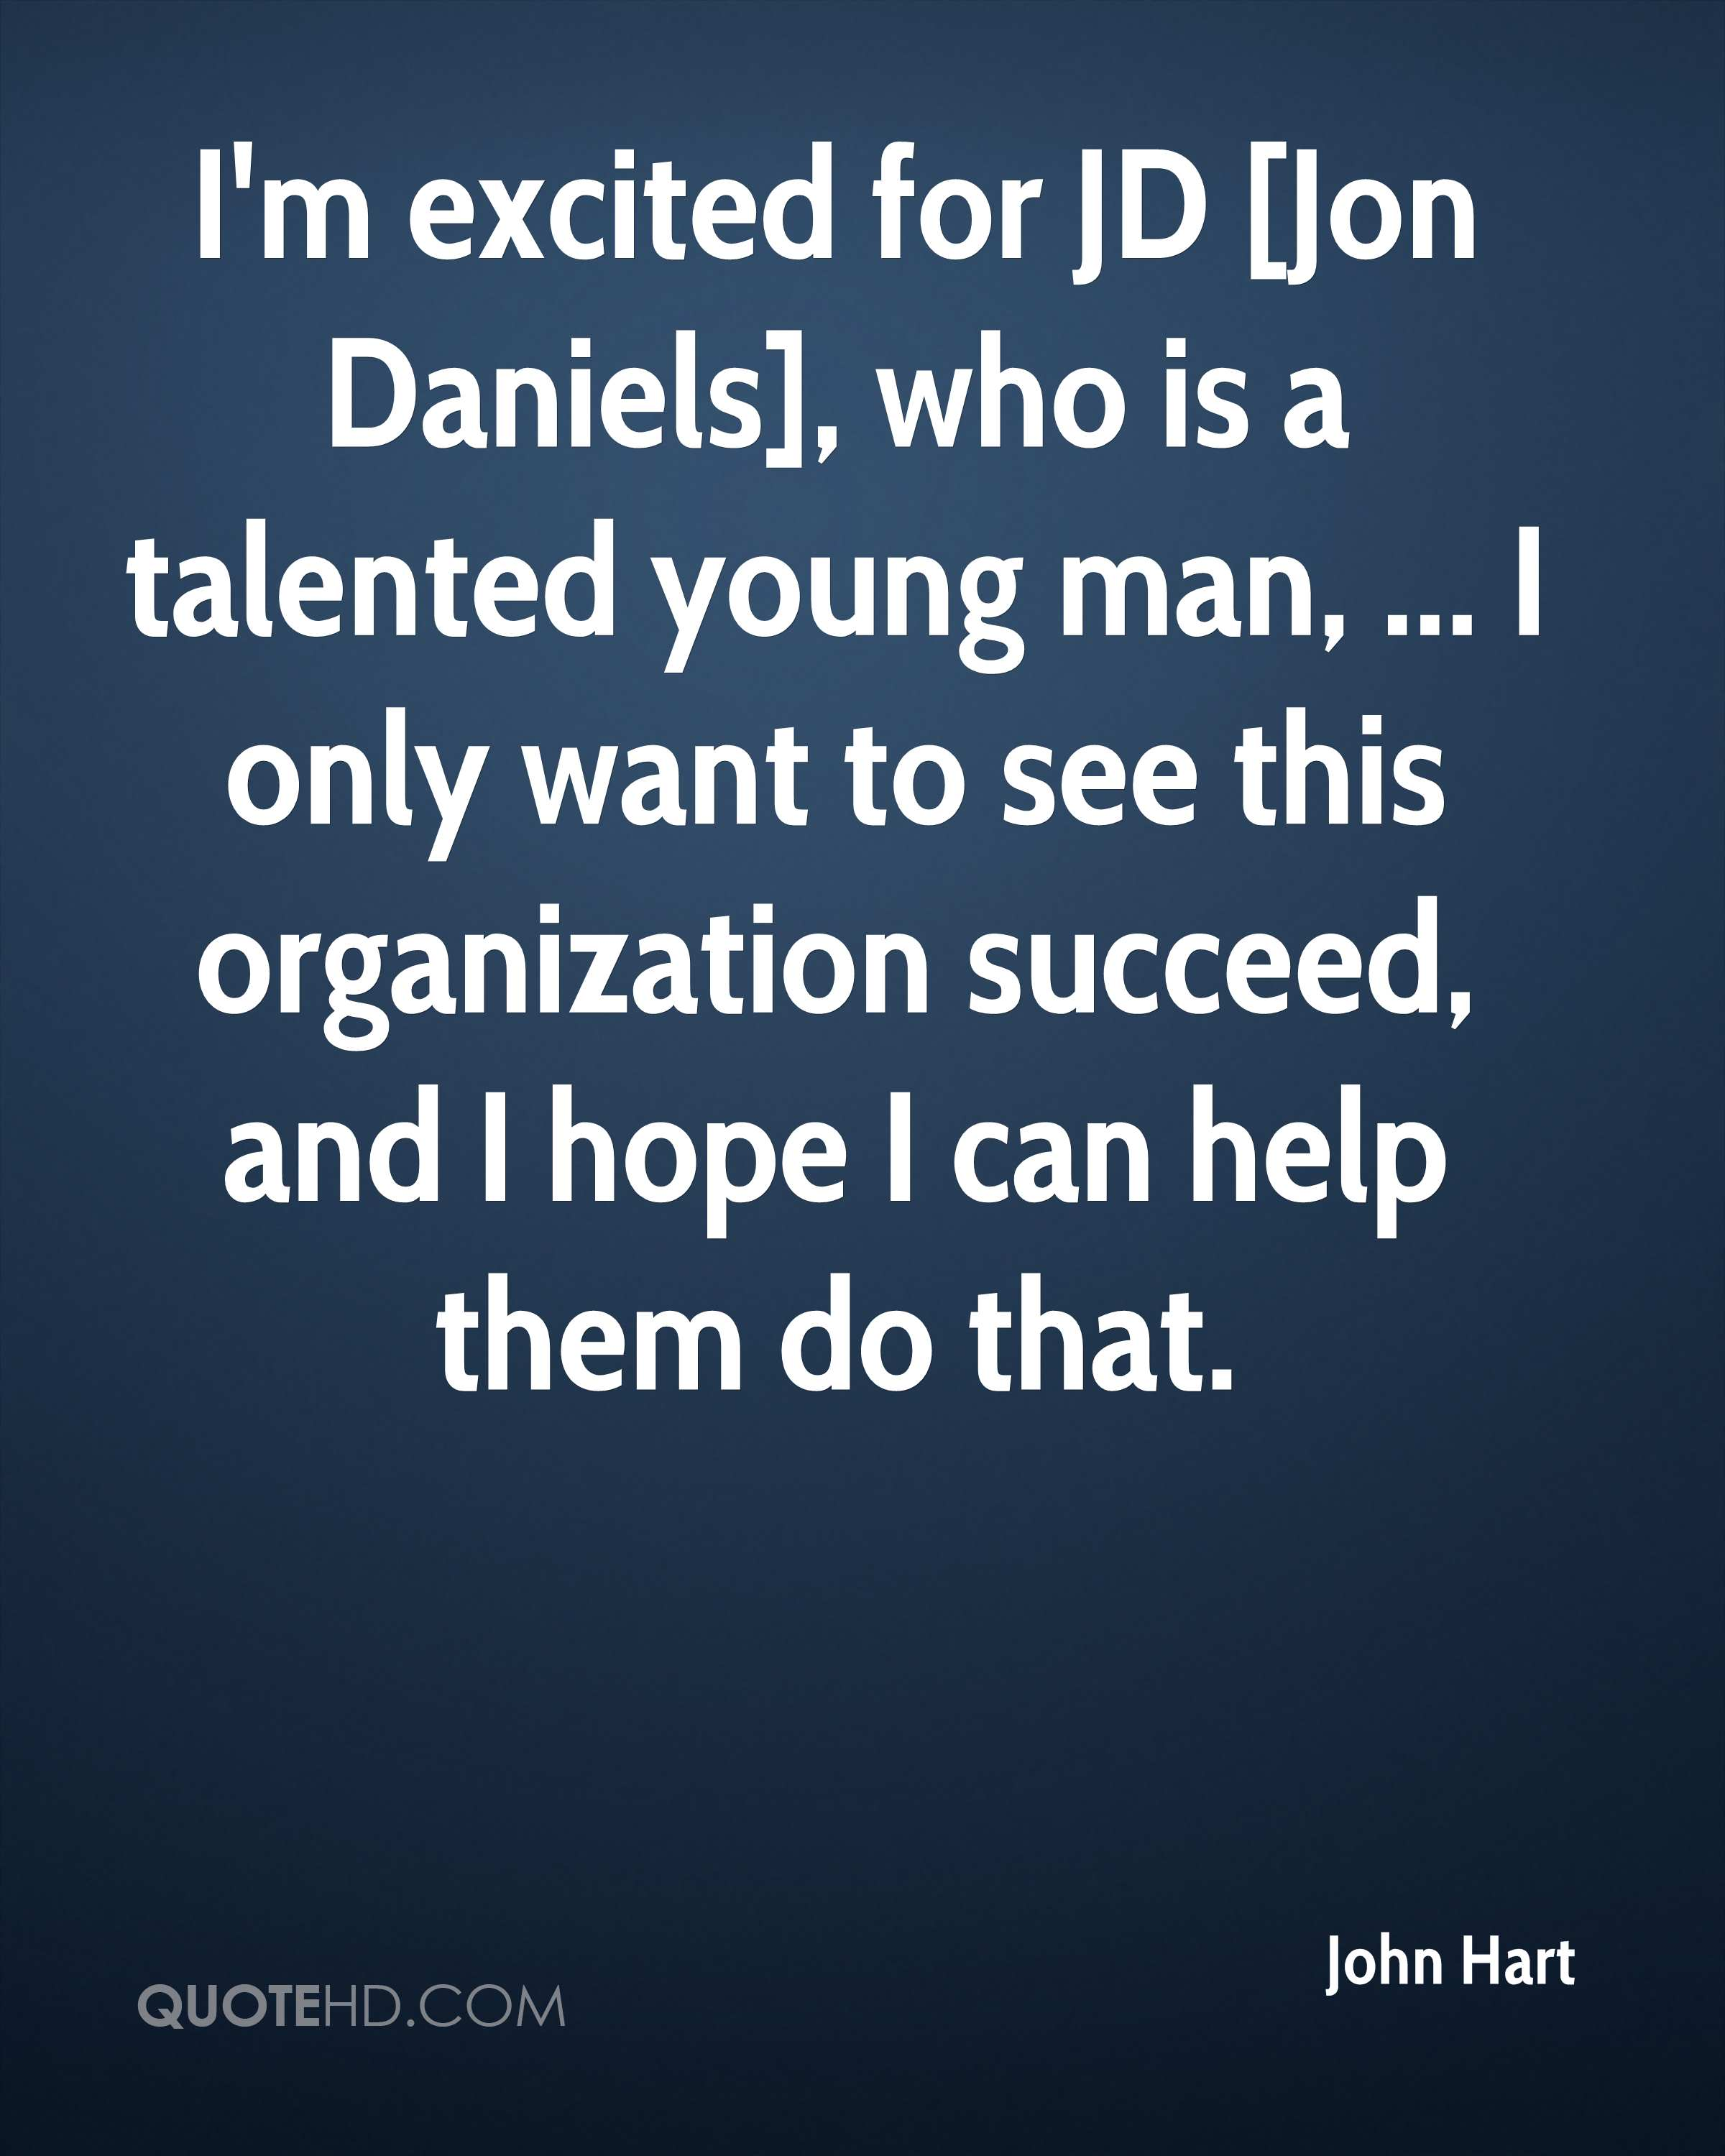 I'm excited for JD [Jon Daniels], who is a talented young man, ... I only want to see this organization succeed, and I hope I can help them do that.